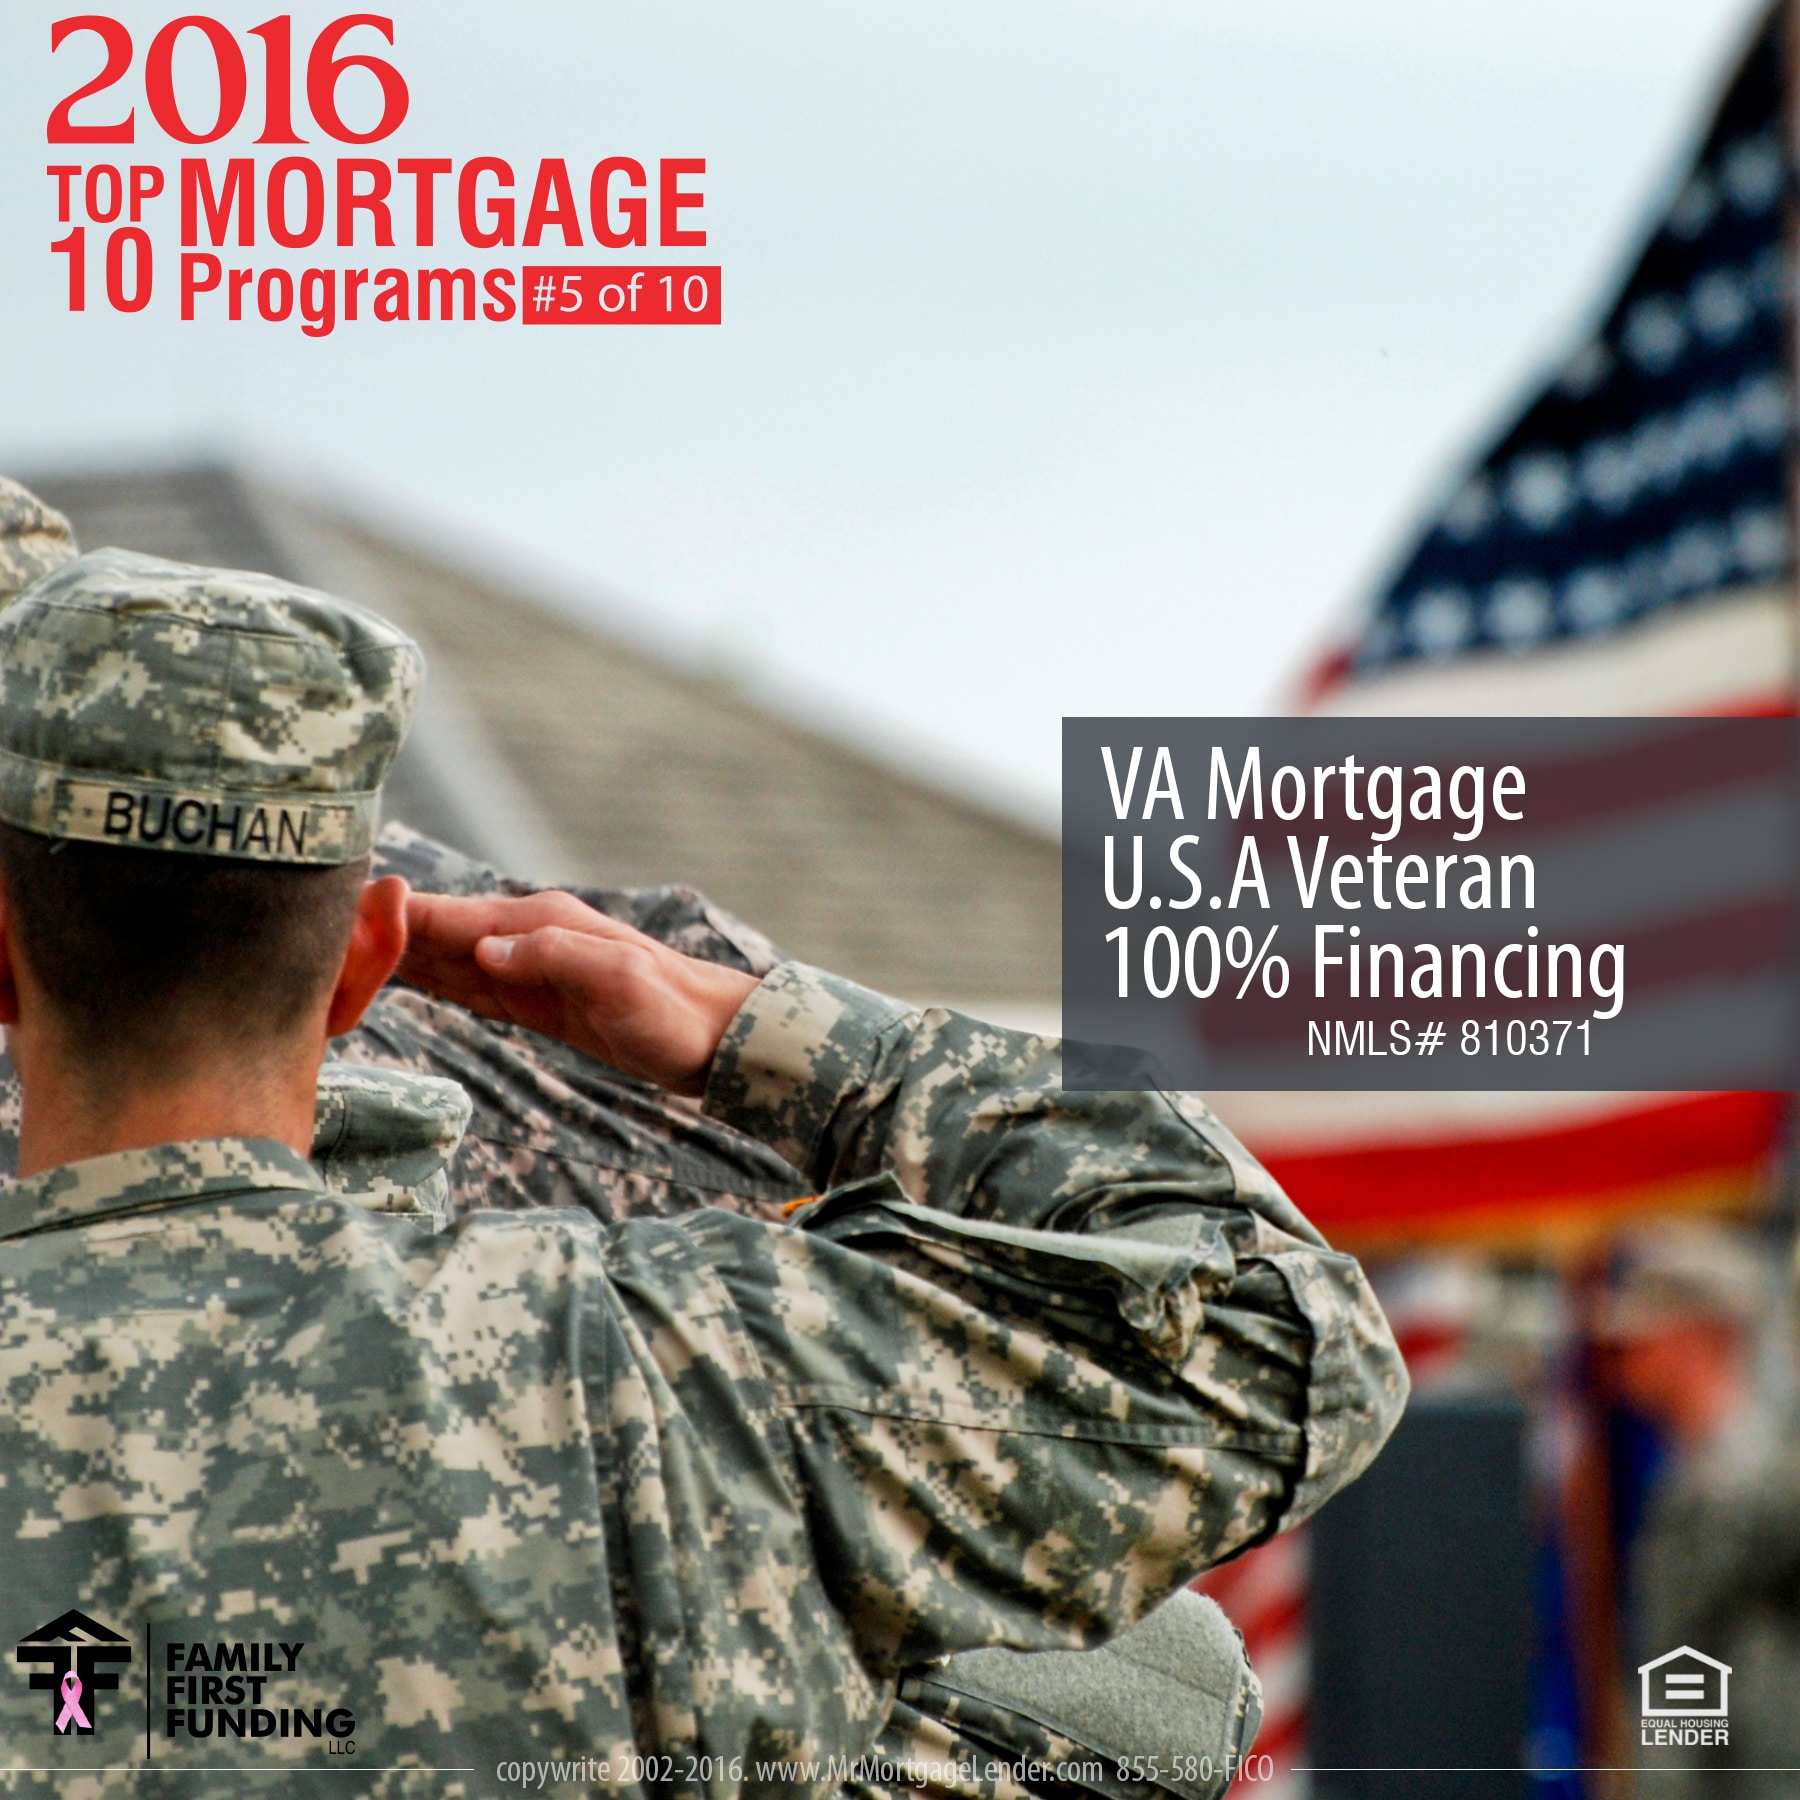 5. VA Mortgage U.S.A Veteran 100% Financing